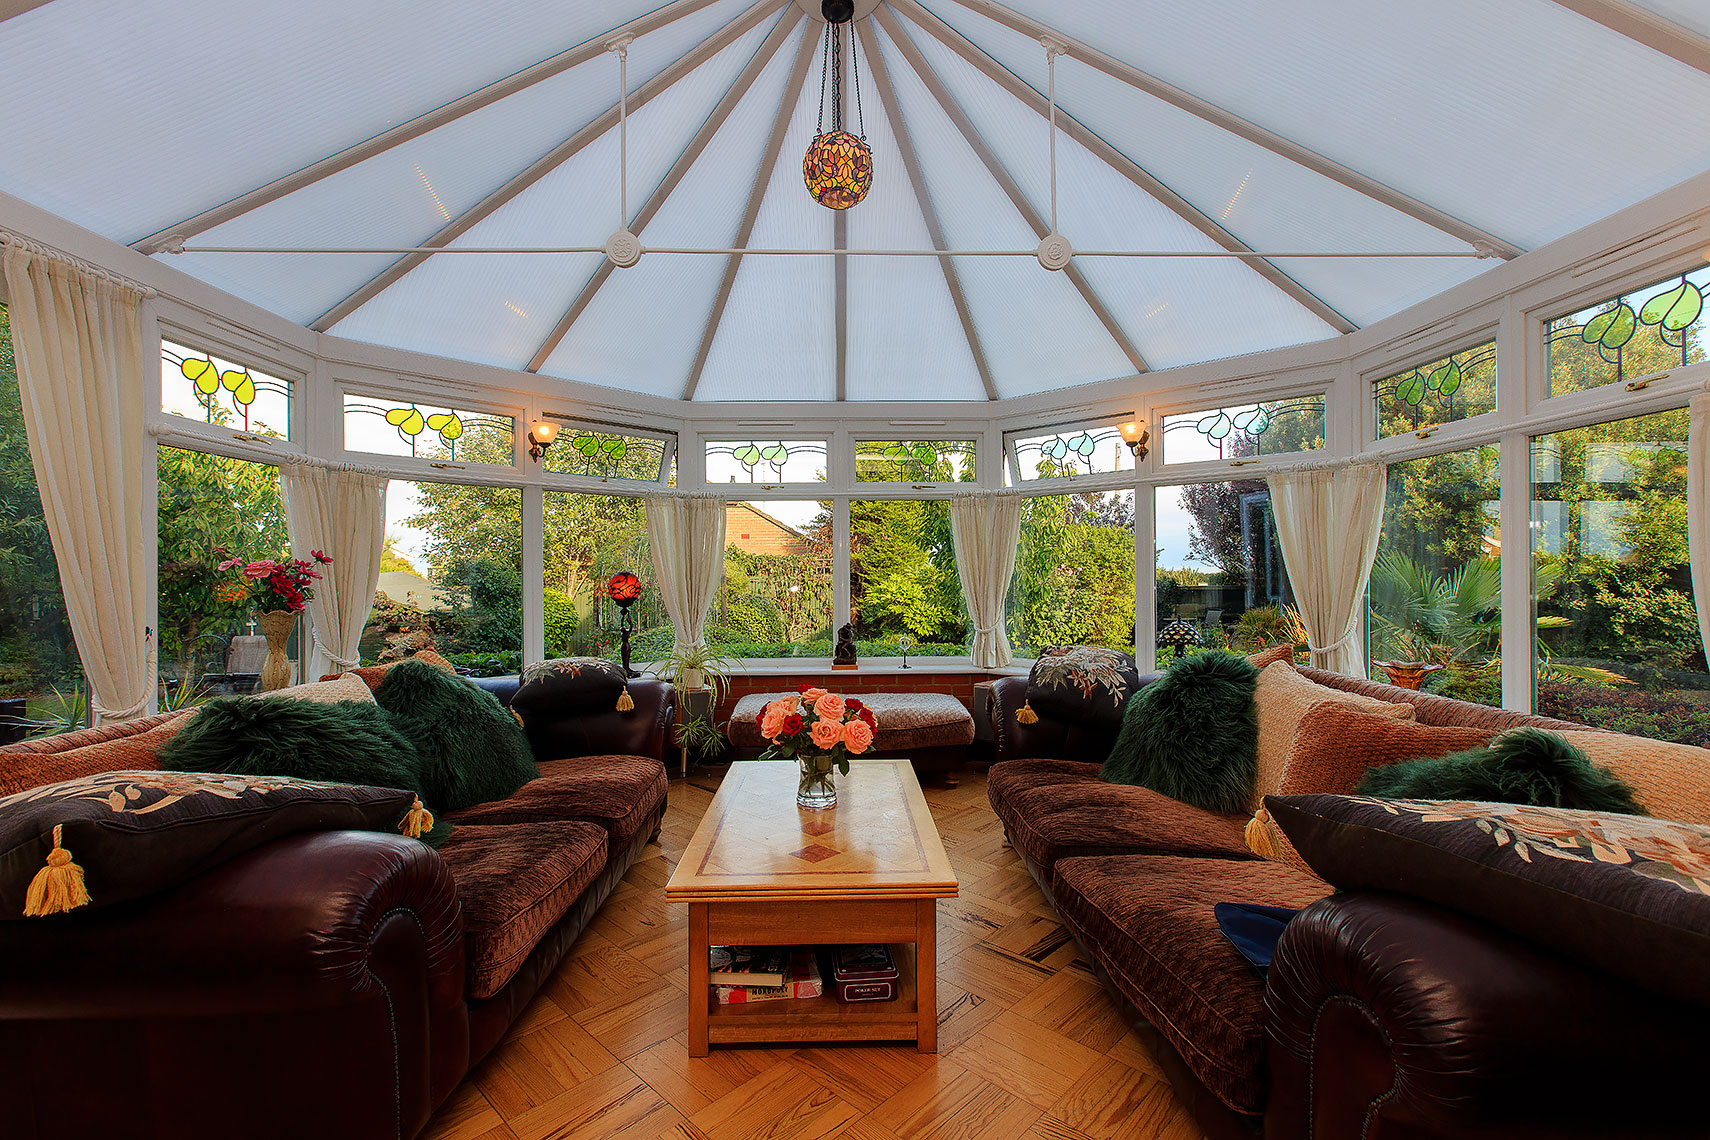 Glass lined interior conservatory architecture of residential property in Kent